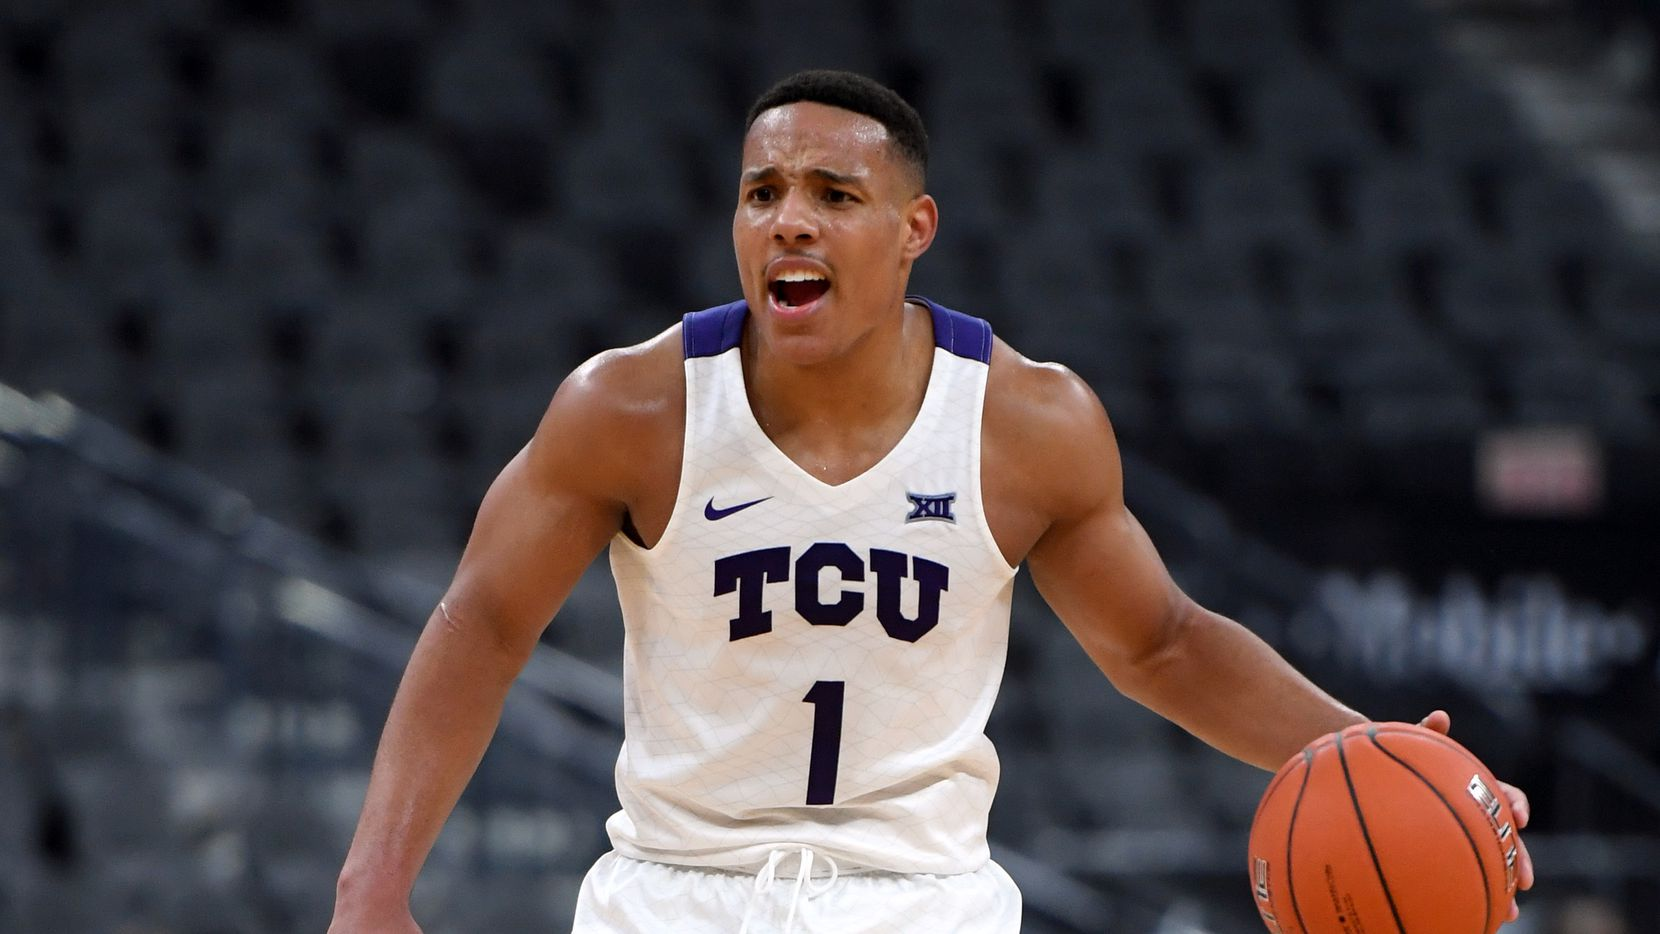 LAS VEGAS, NEVADA - NOVEMBER 24:  Desmond Bane #1 of the TCU Horned Frogs brings the ball up the court against the Clemson Tigers during the MGM Resorts Main Event basketball tournament at T-Mobile Arena on November 24, 2019 in Las Vegas, Nevada. The Tigers defeated the Horned Frogs 62-60 in overtime.  (Photo by Ethan Miller/Getty Images)